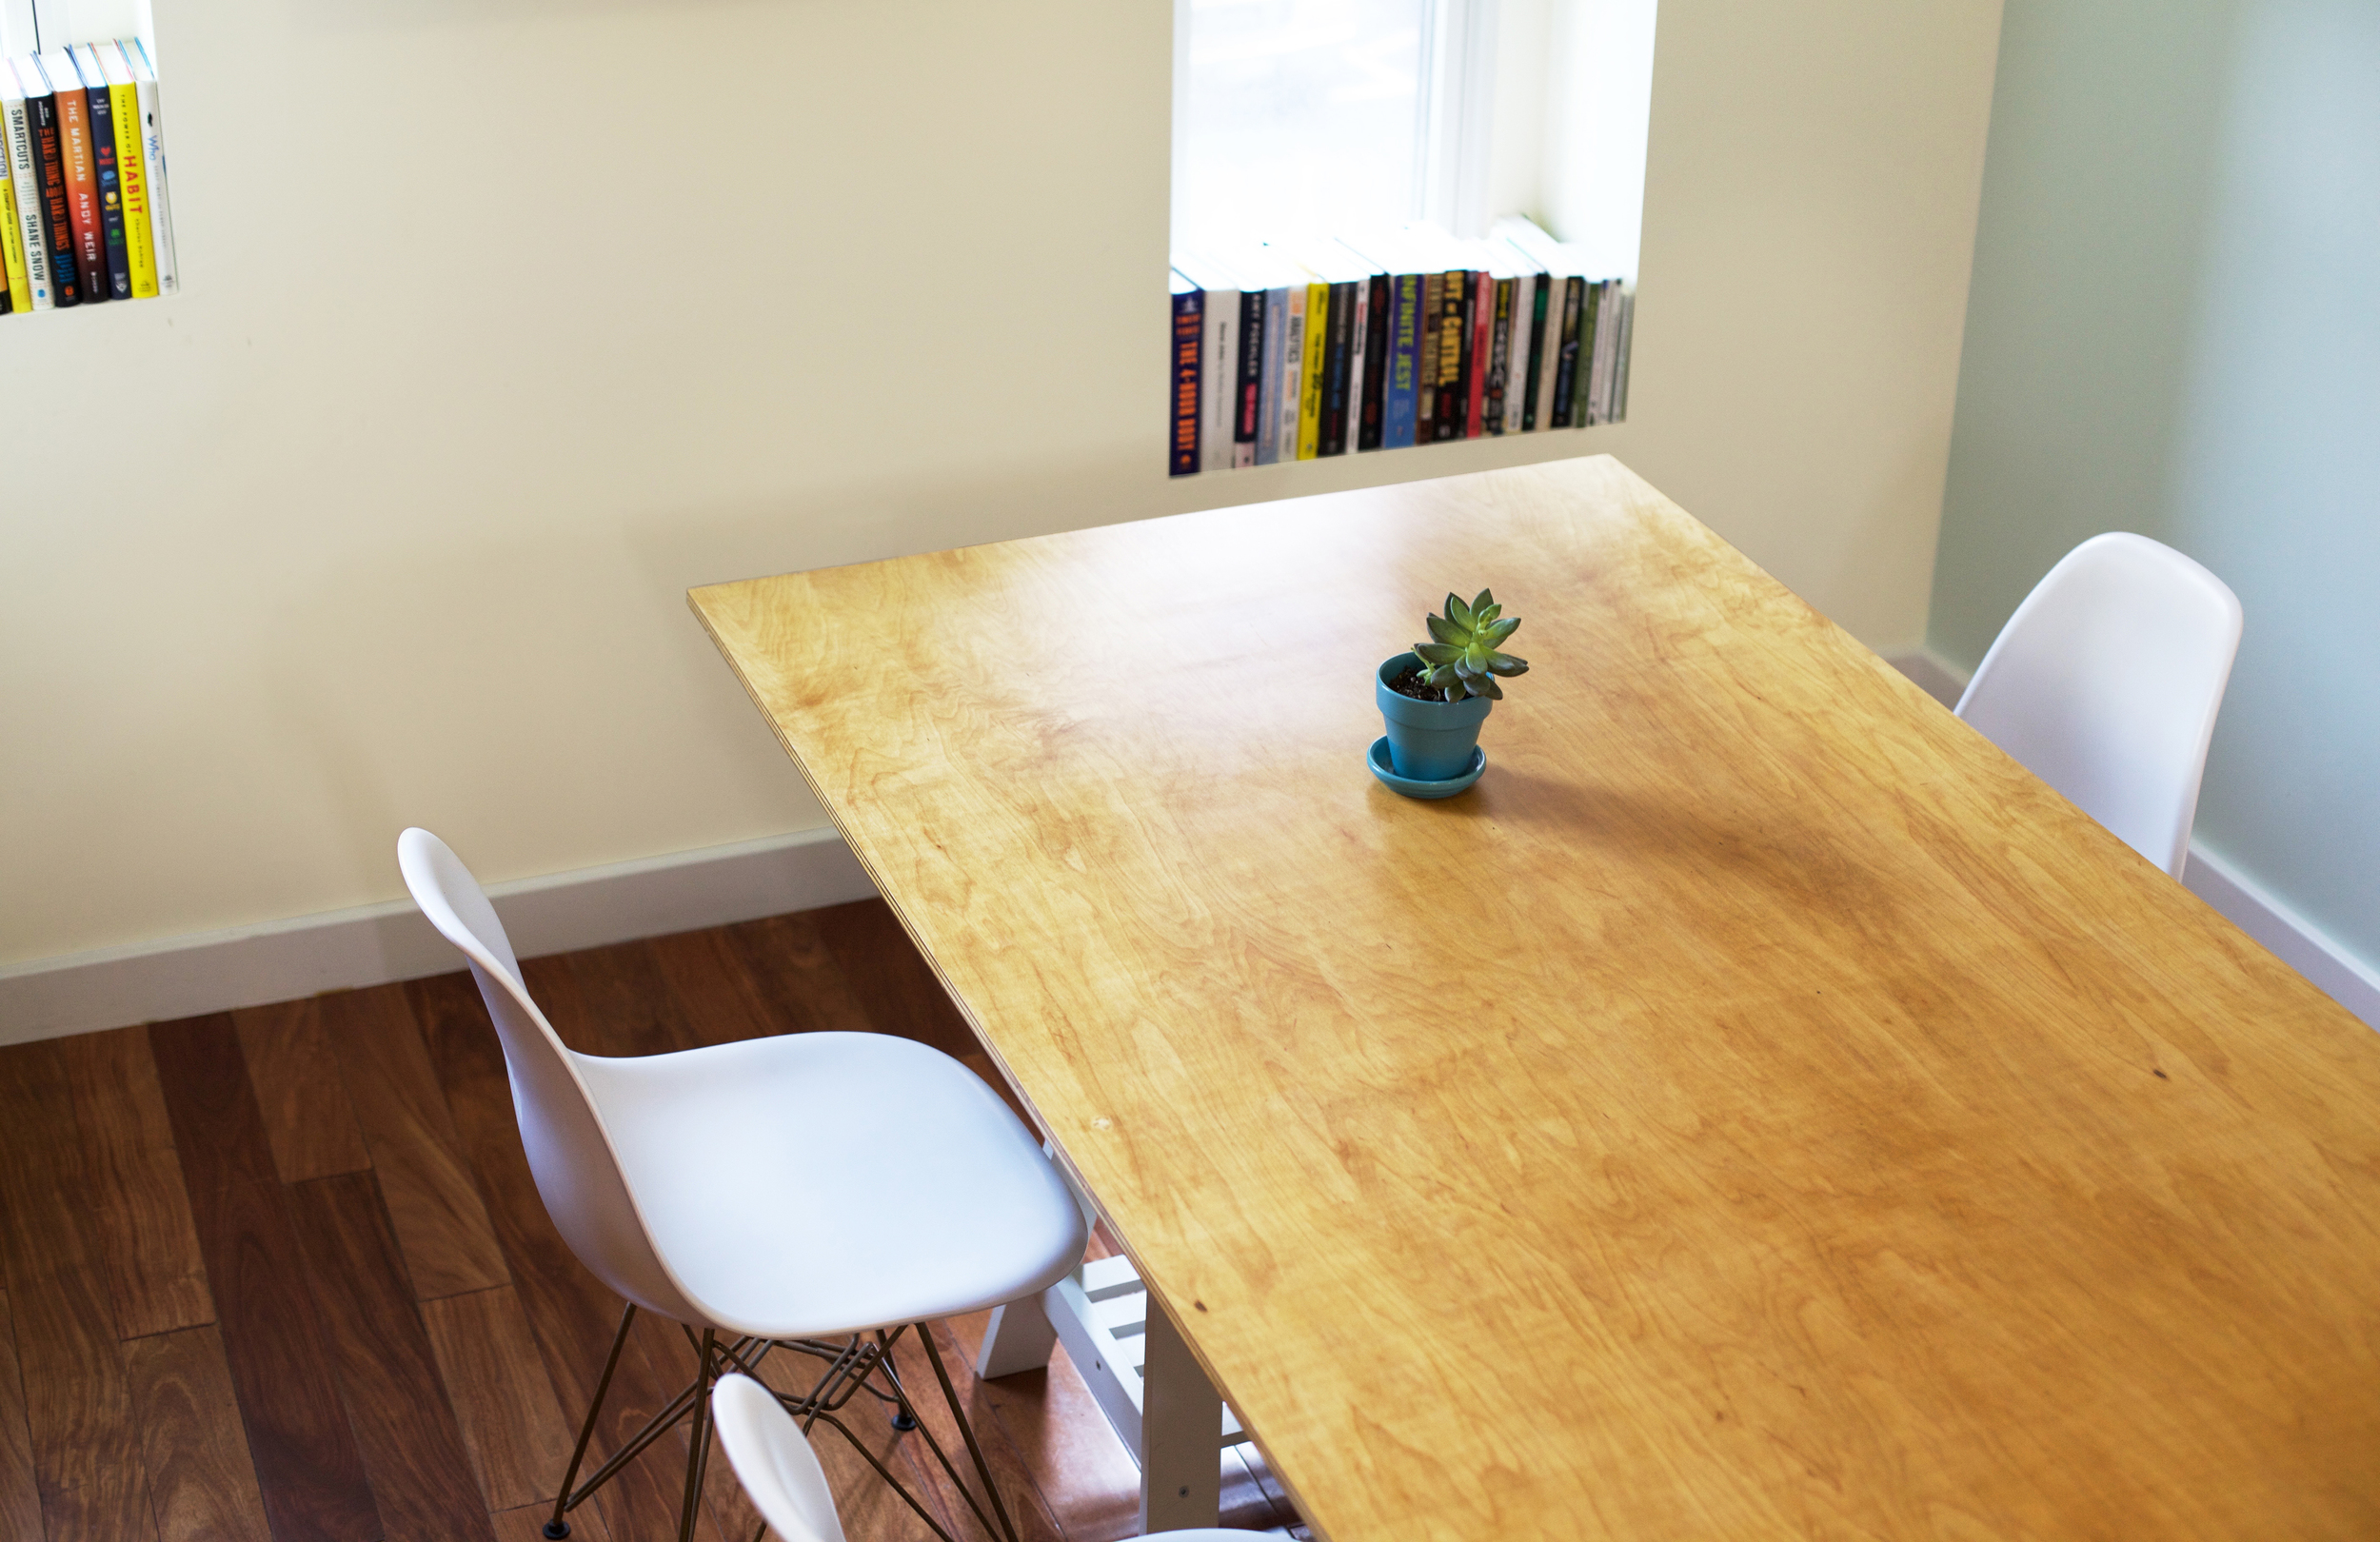 zmaic-one-month-interior-design-conference-room-workspace-custom-table-plant-books.jpg